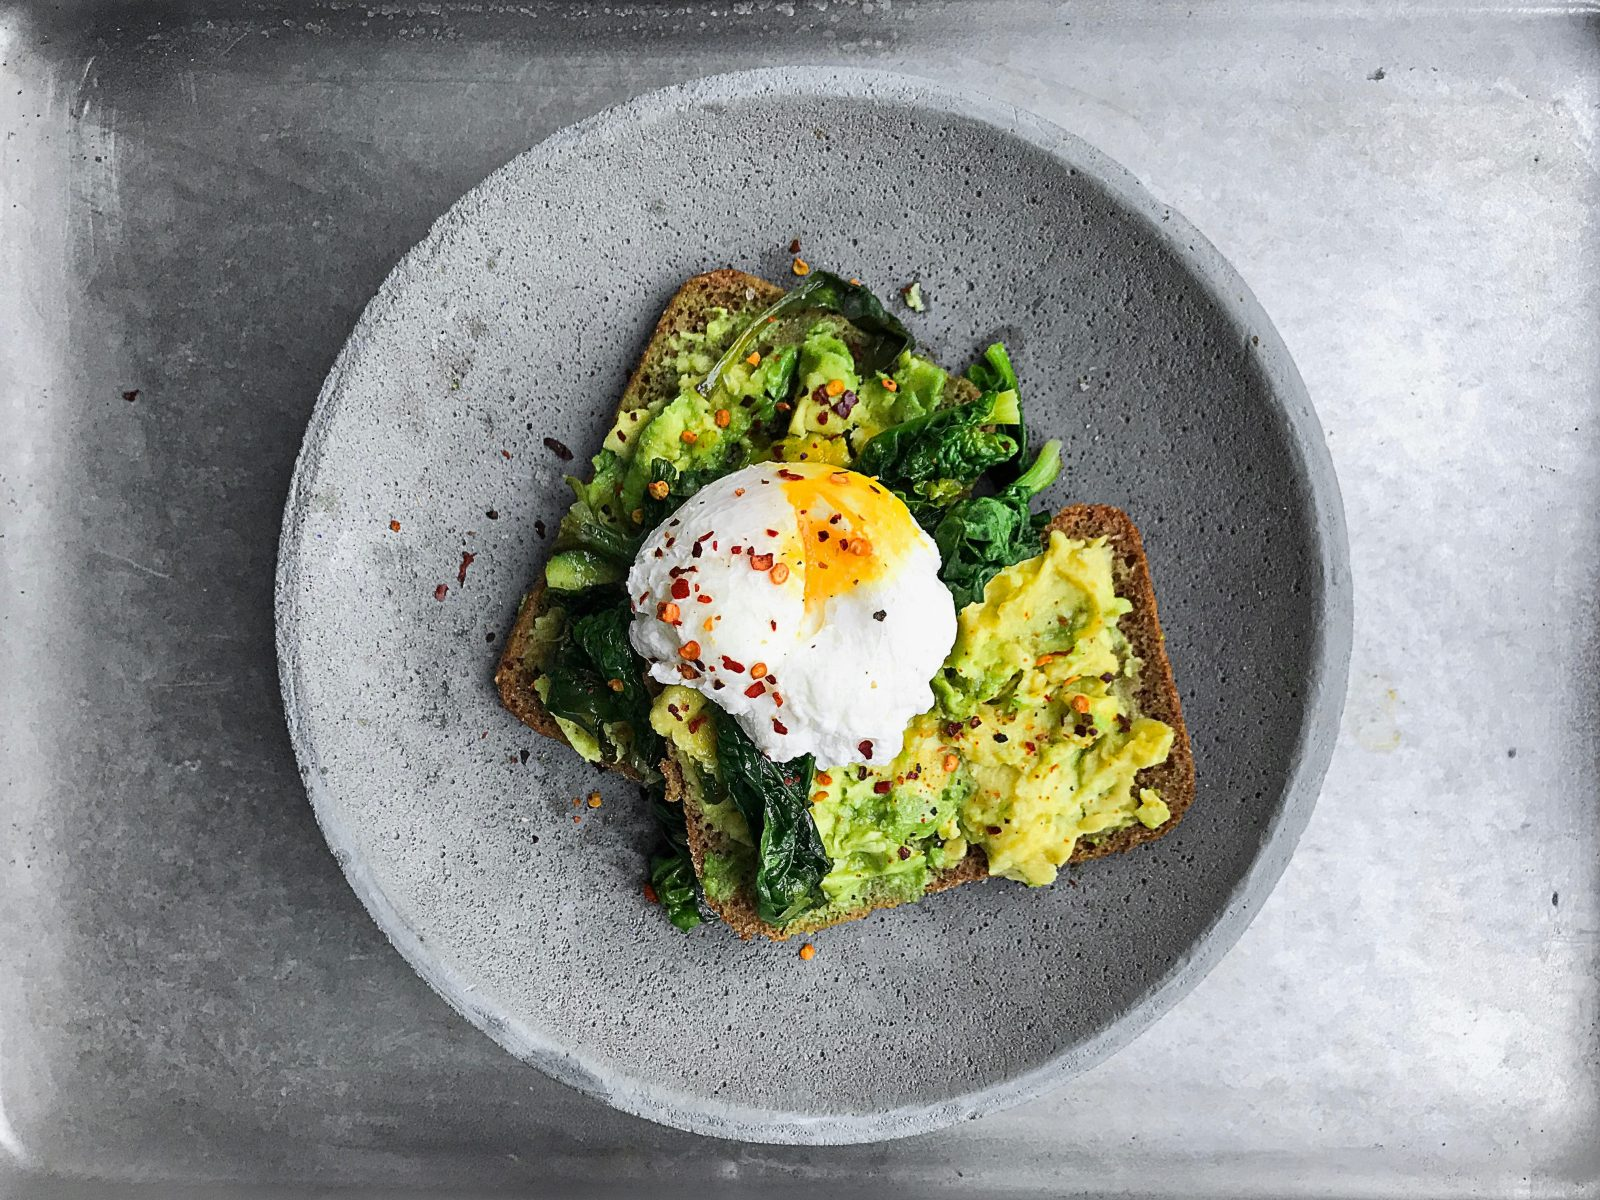 Food to try in Australia: Brunch is never complete without an Avo Smash